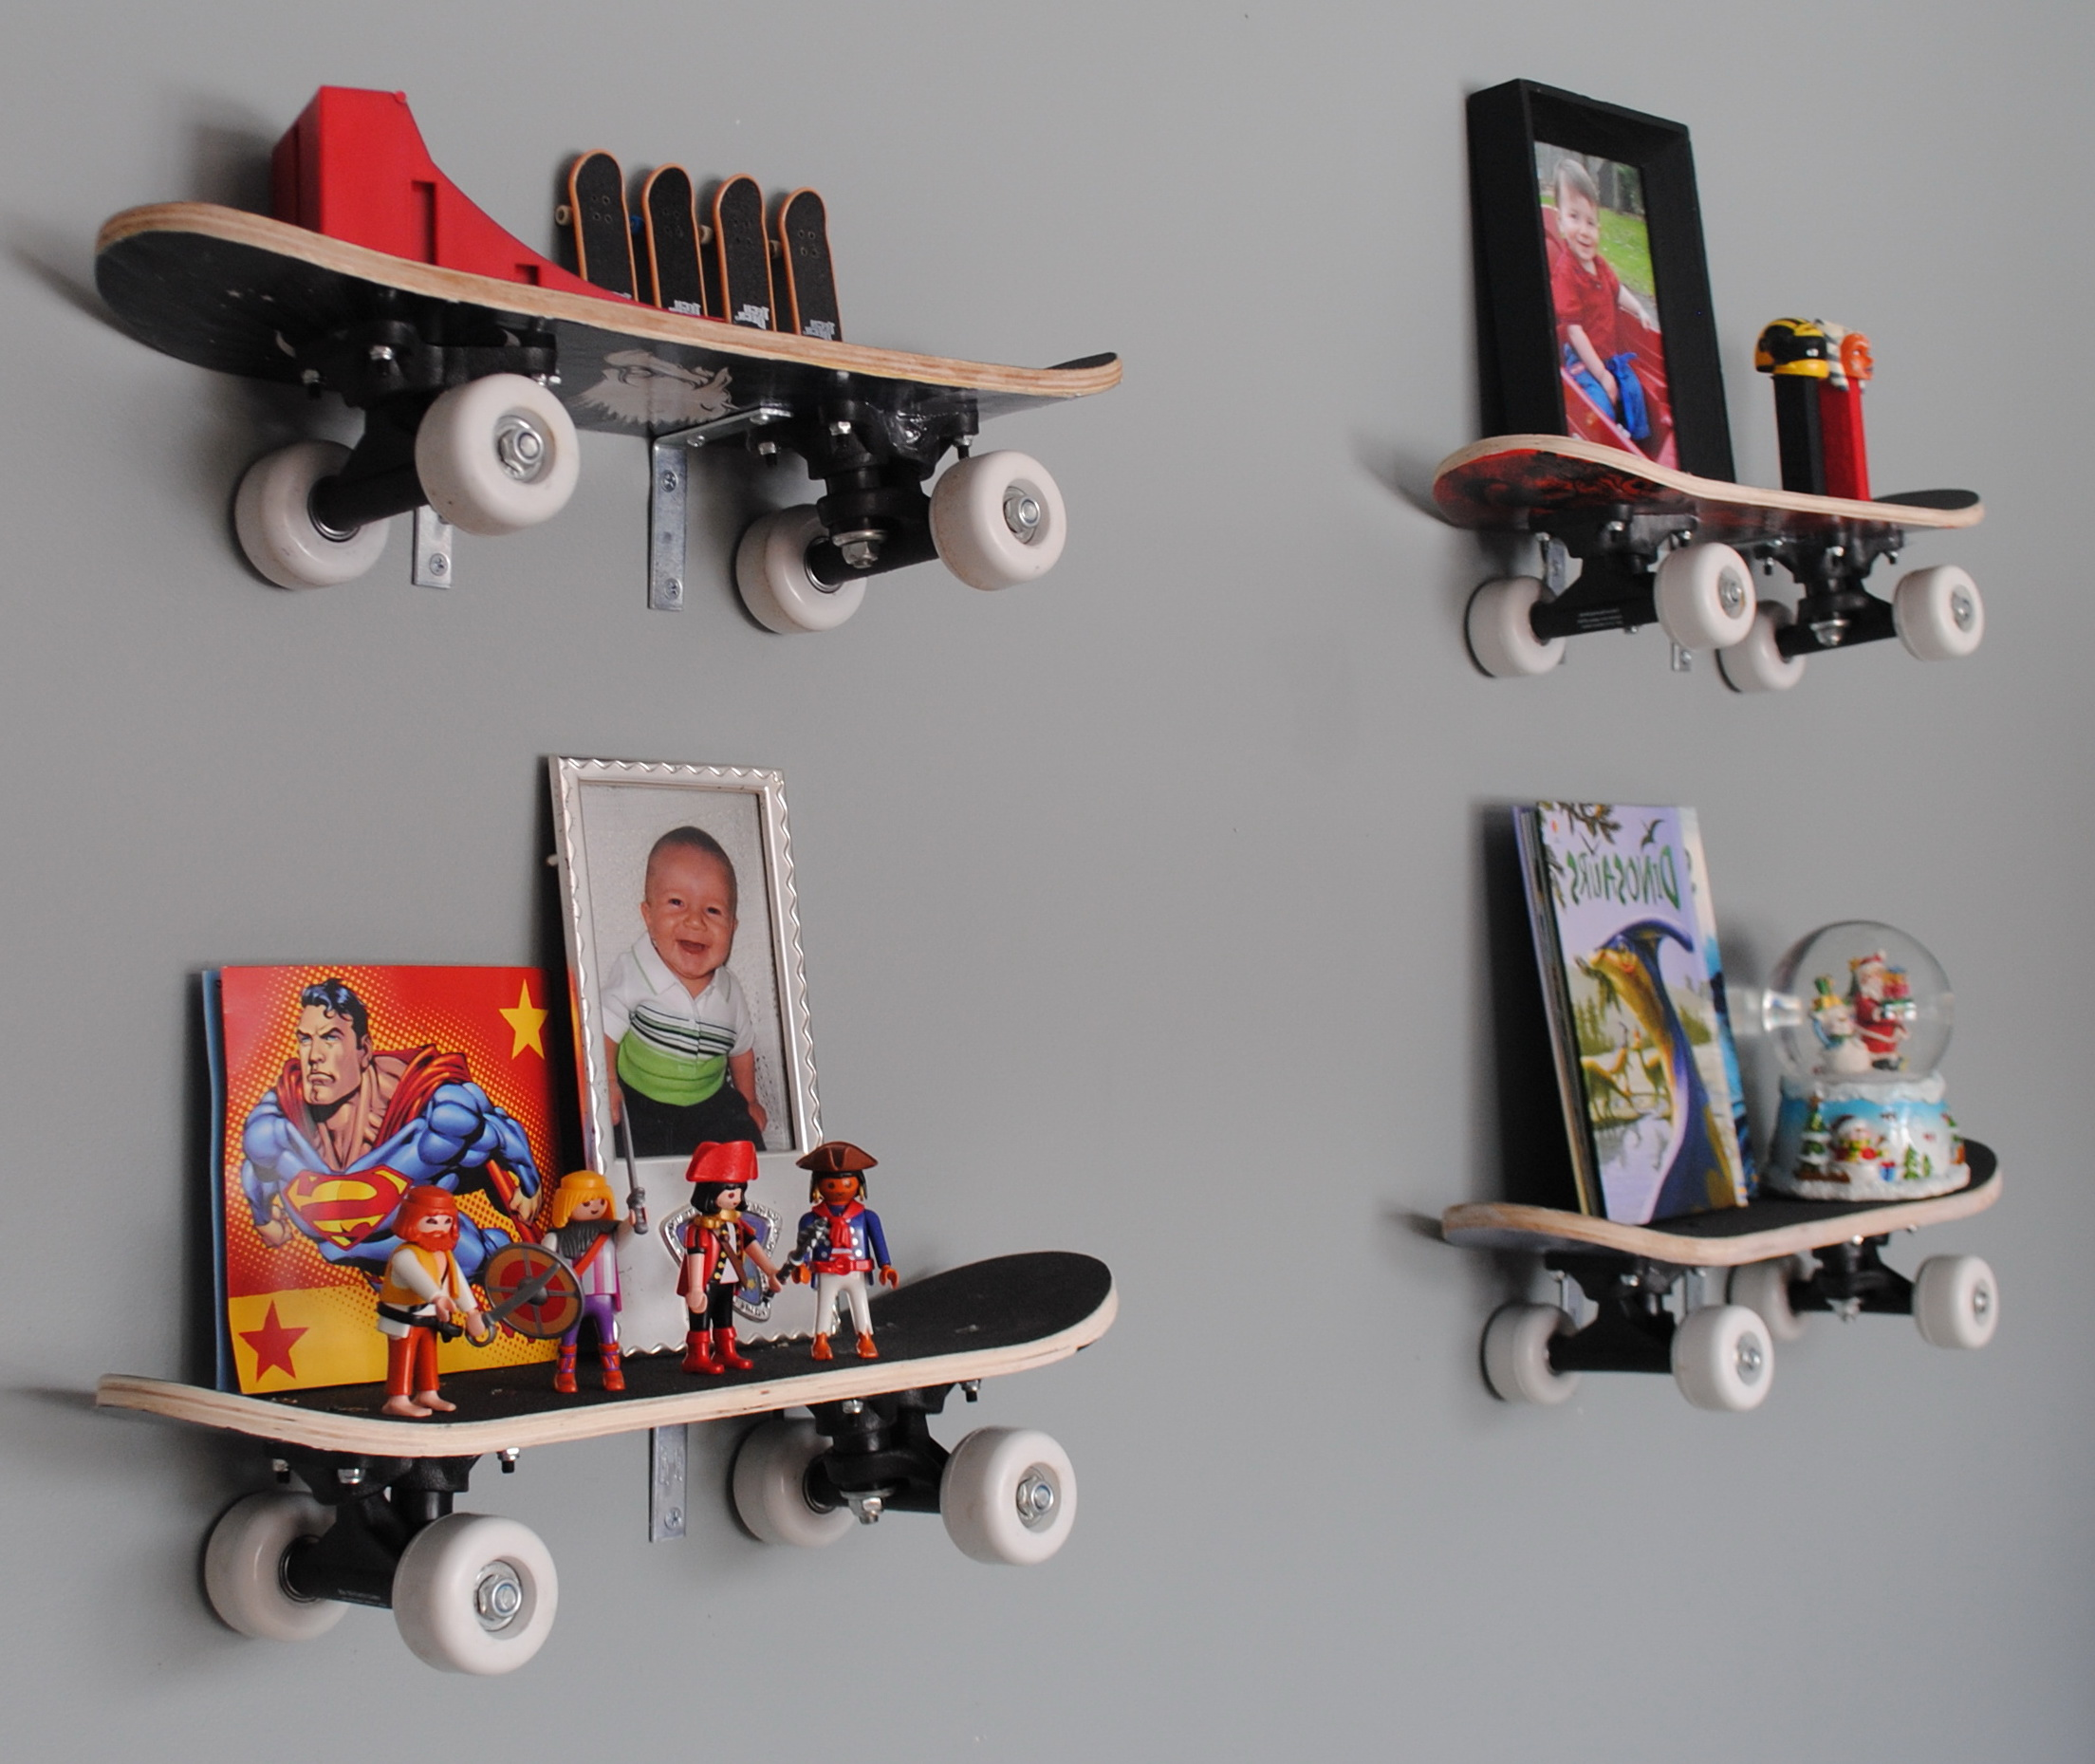 Permalink to Wall Mounted Bookshelves For Kids